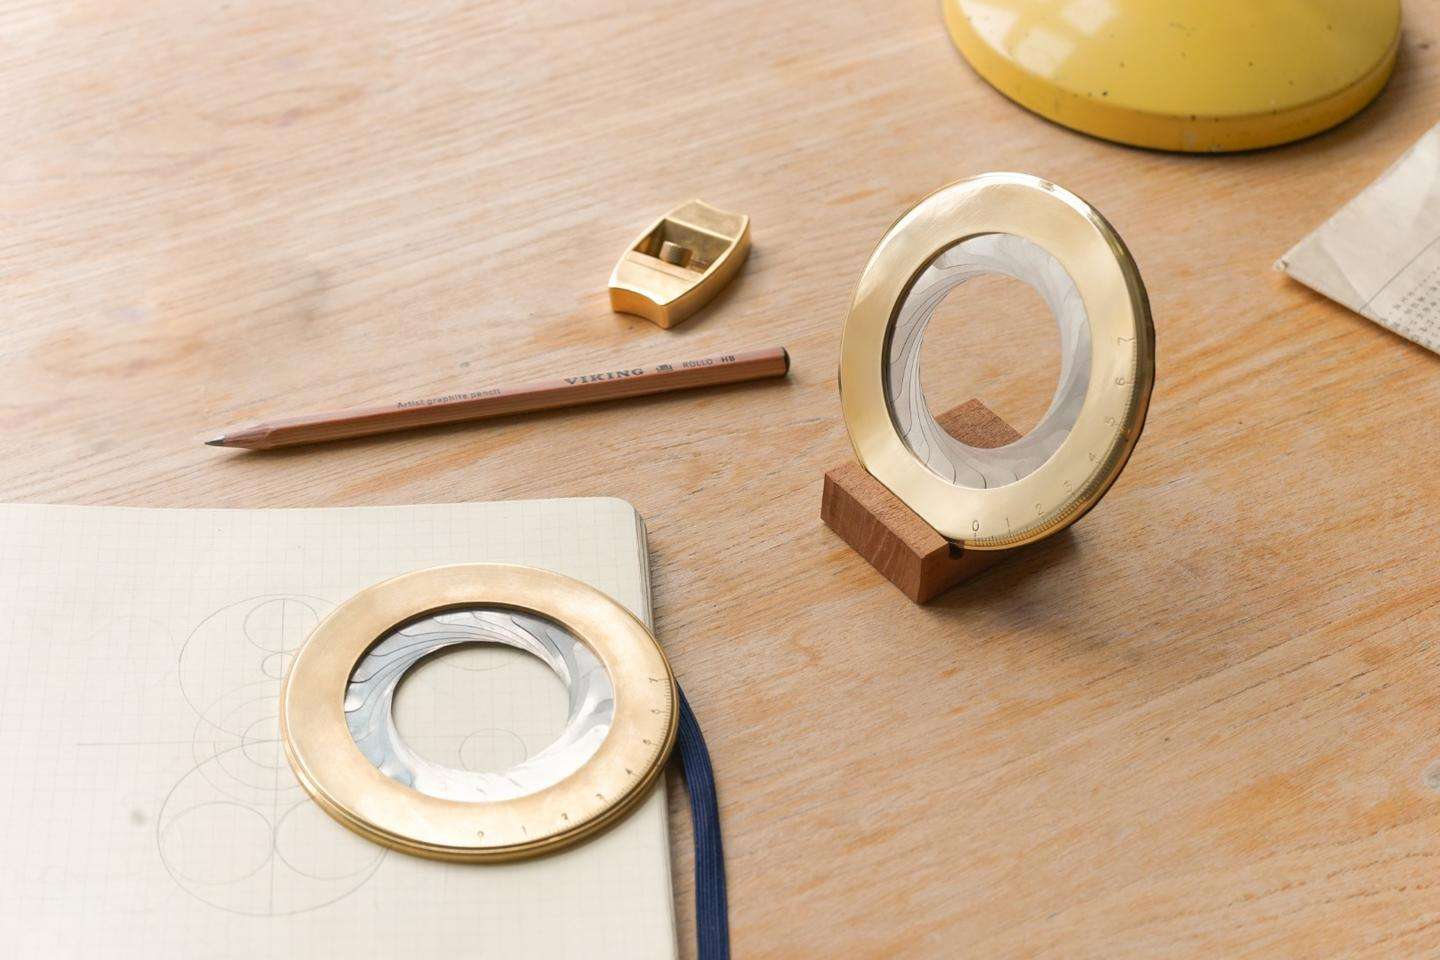 The Iris, shown with its wooden base, alongside Makers Cabinet's first Kickstarter project, the Høvel